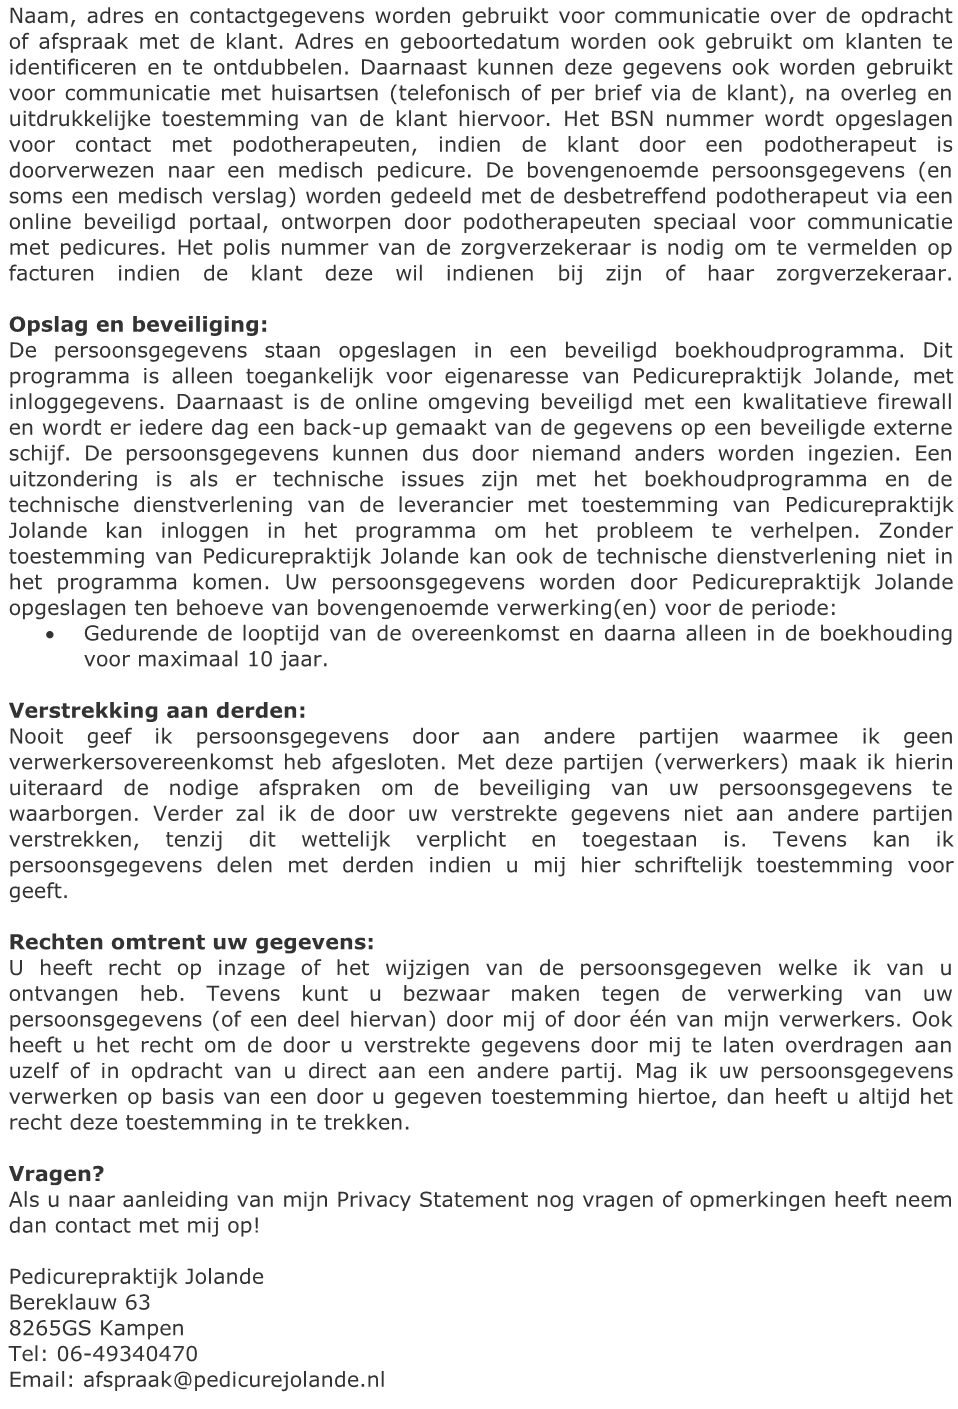 Privacy Policy Pedicurepraktijk Jolande 2